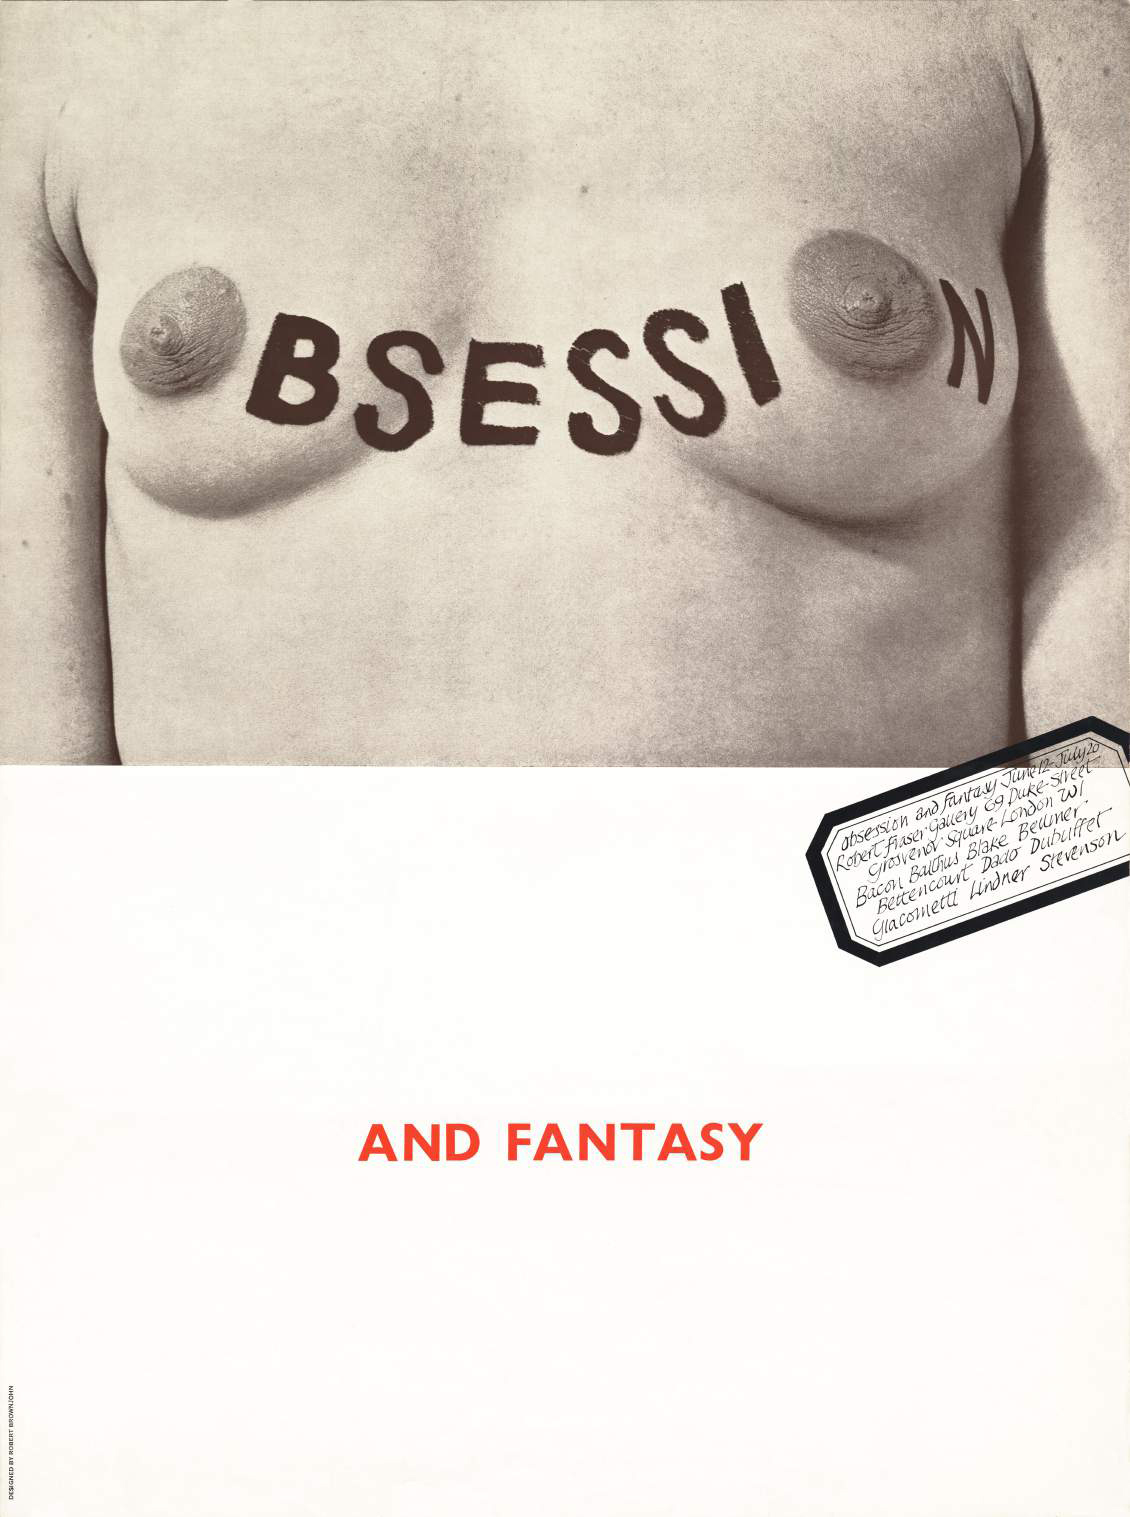 Robert Brownjohn Obsession and Fantasy poster